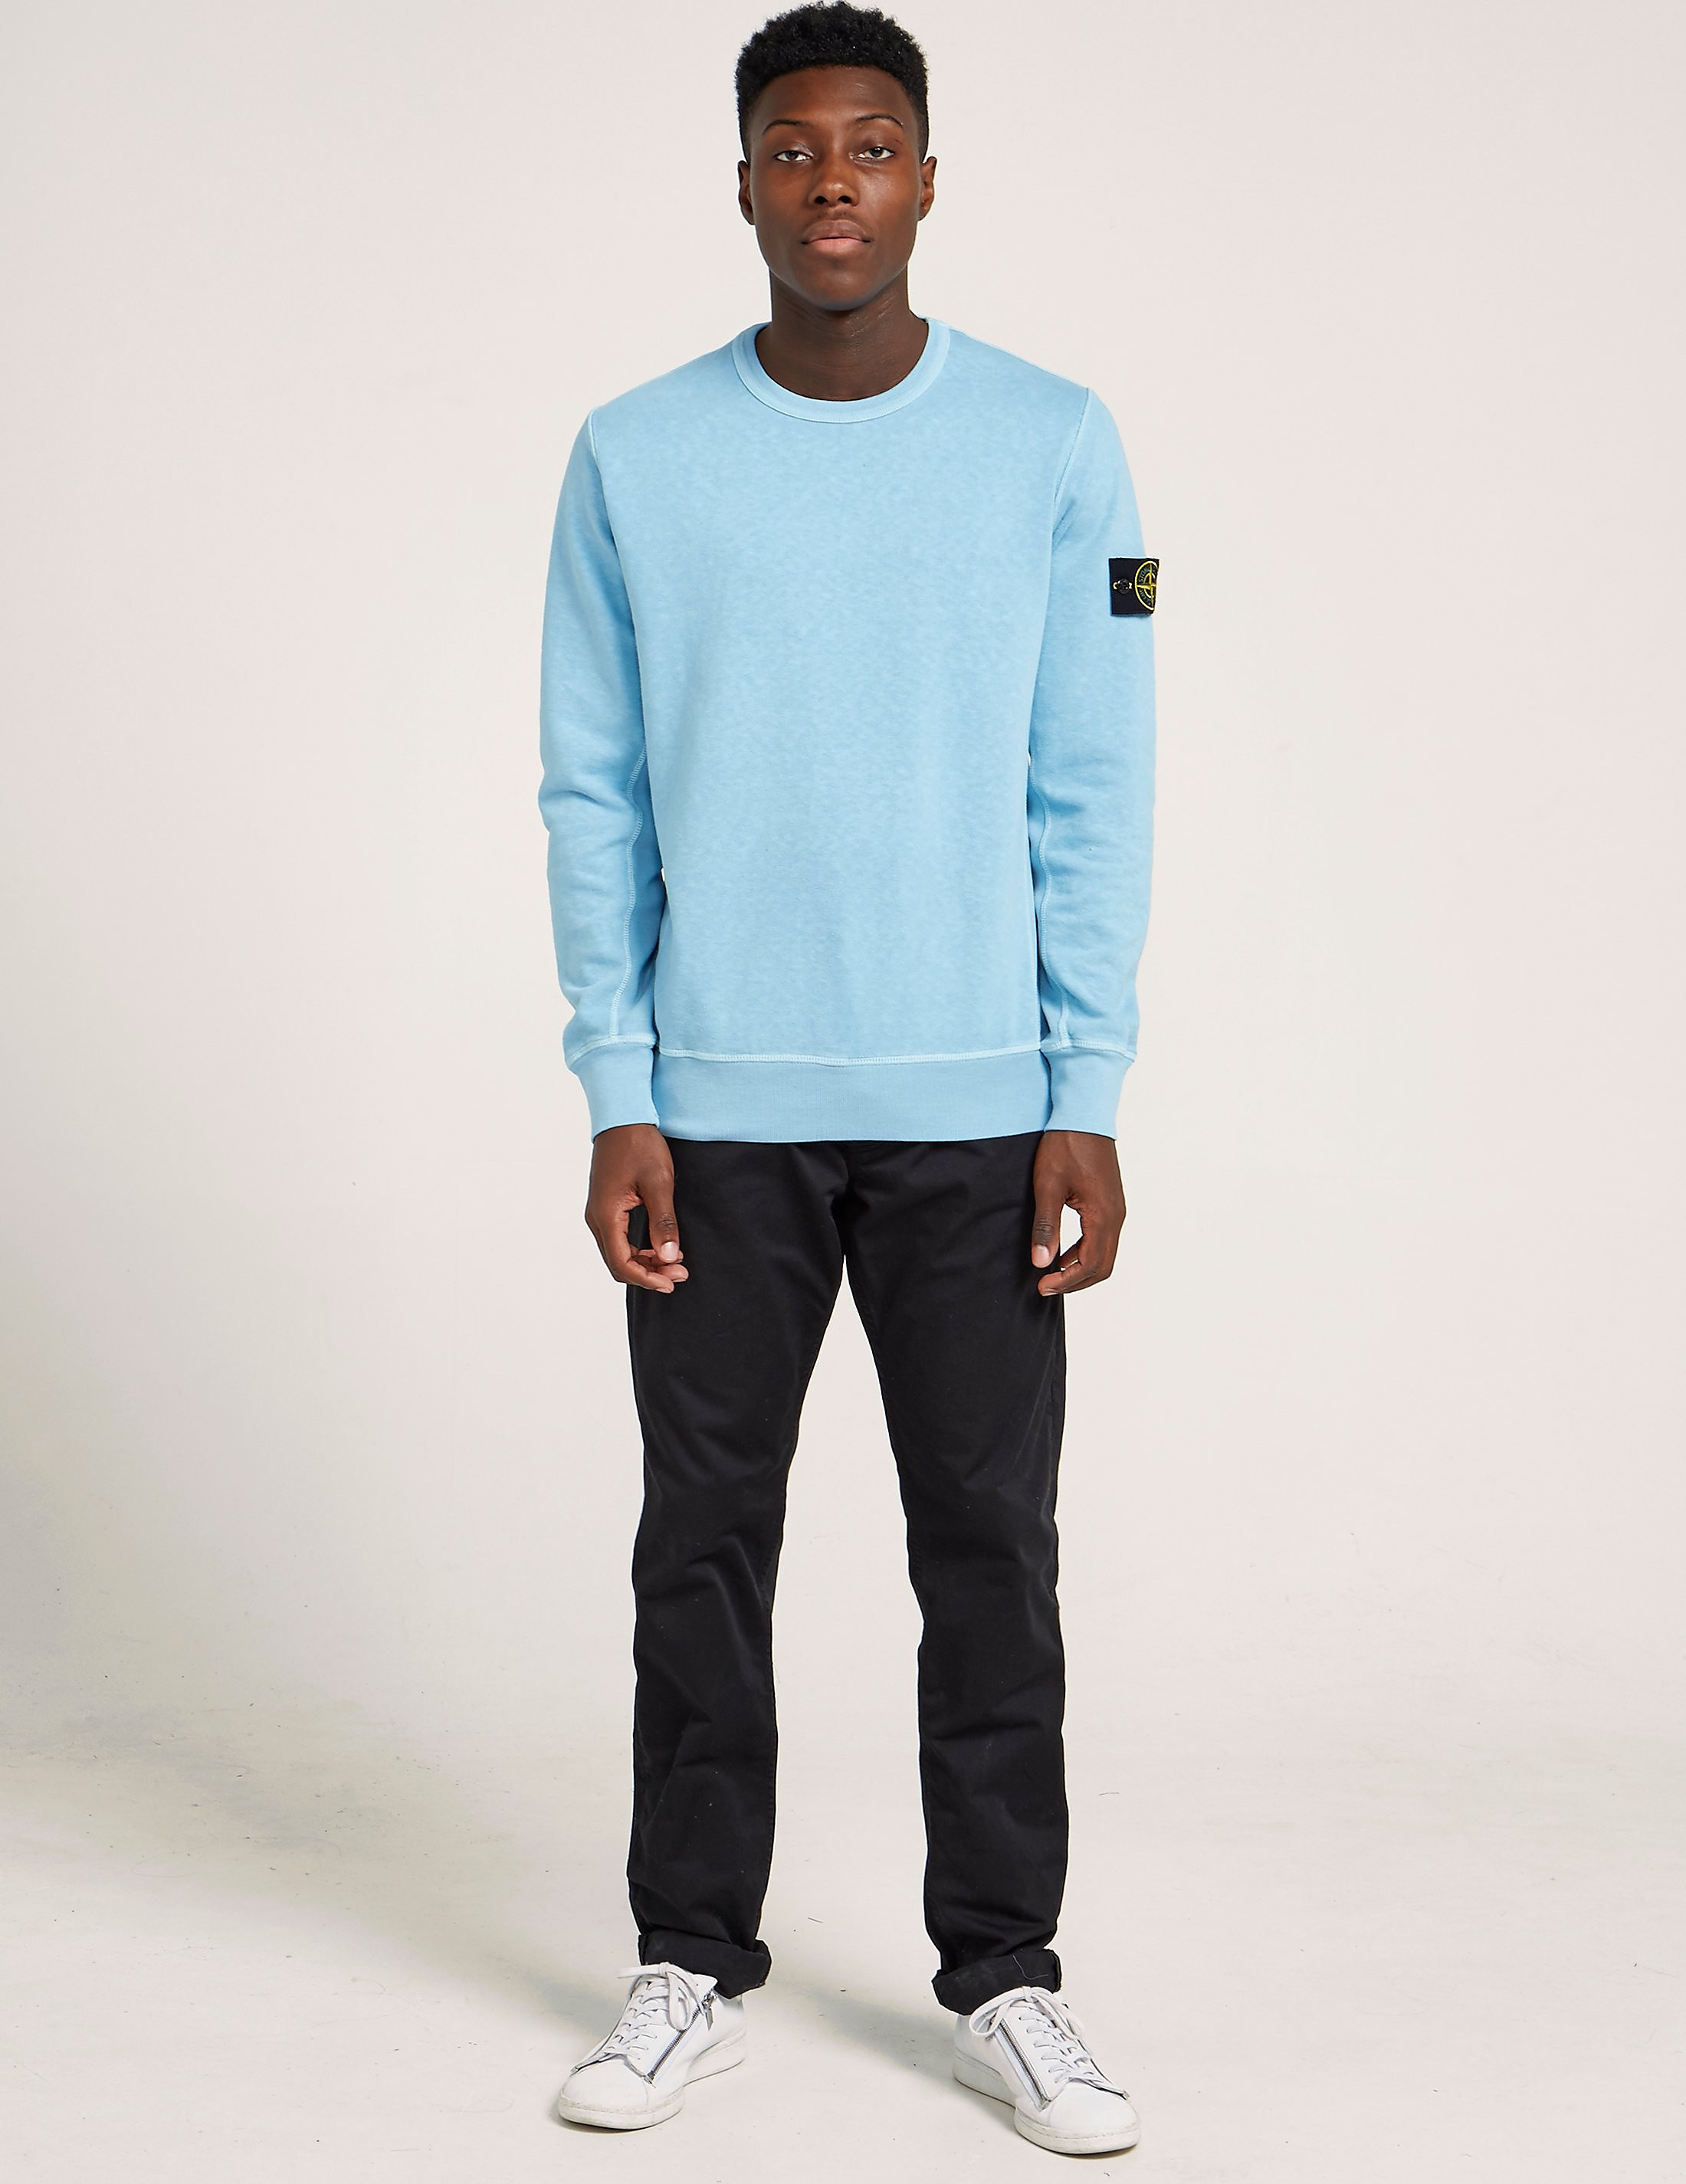 Stone Island Slub Cotton Sweatshirt